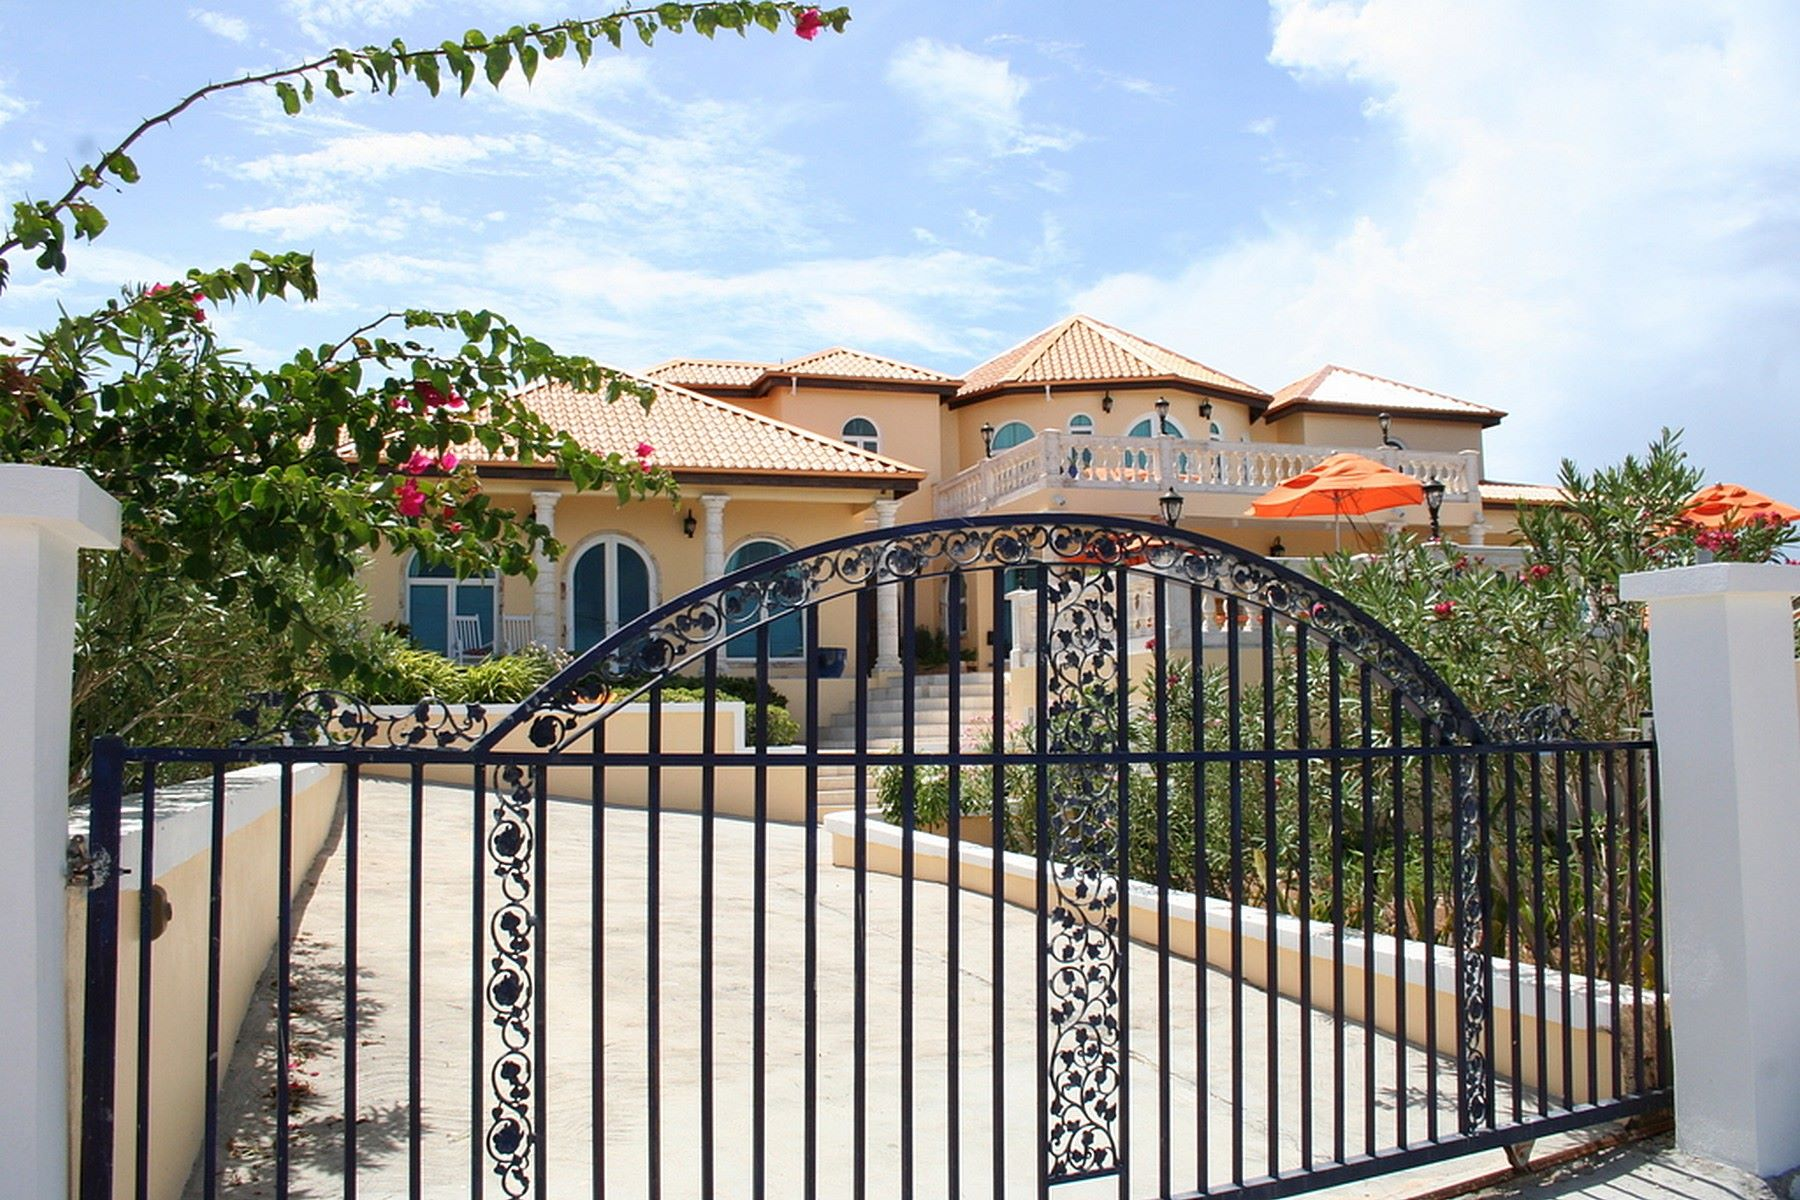 Casa Unifamiliar por un Venta en Captains Castle Captains Ridge Other Anguilla, AI2640 Anguila